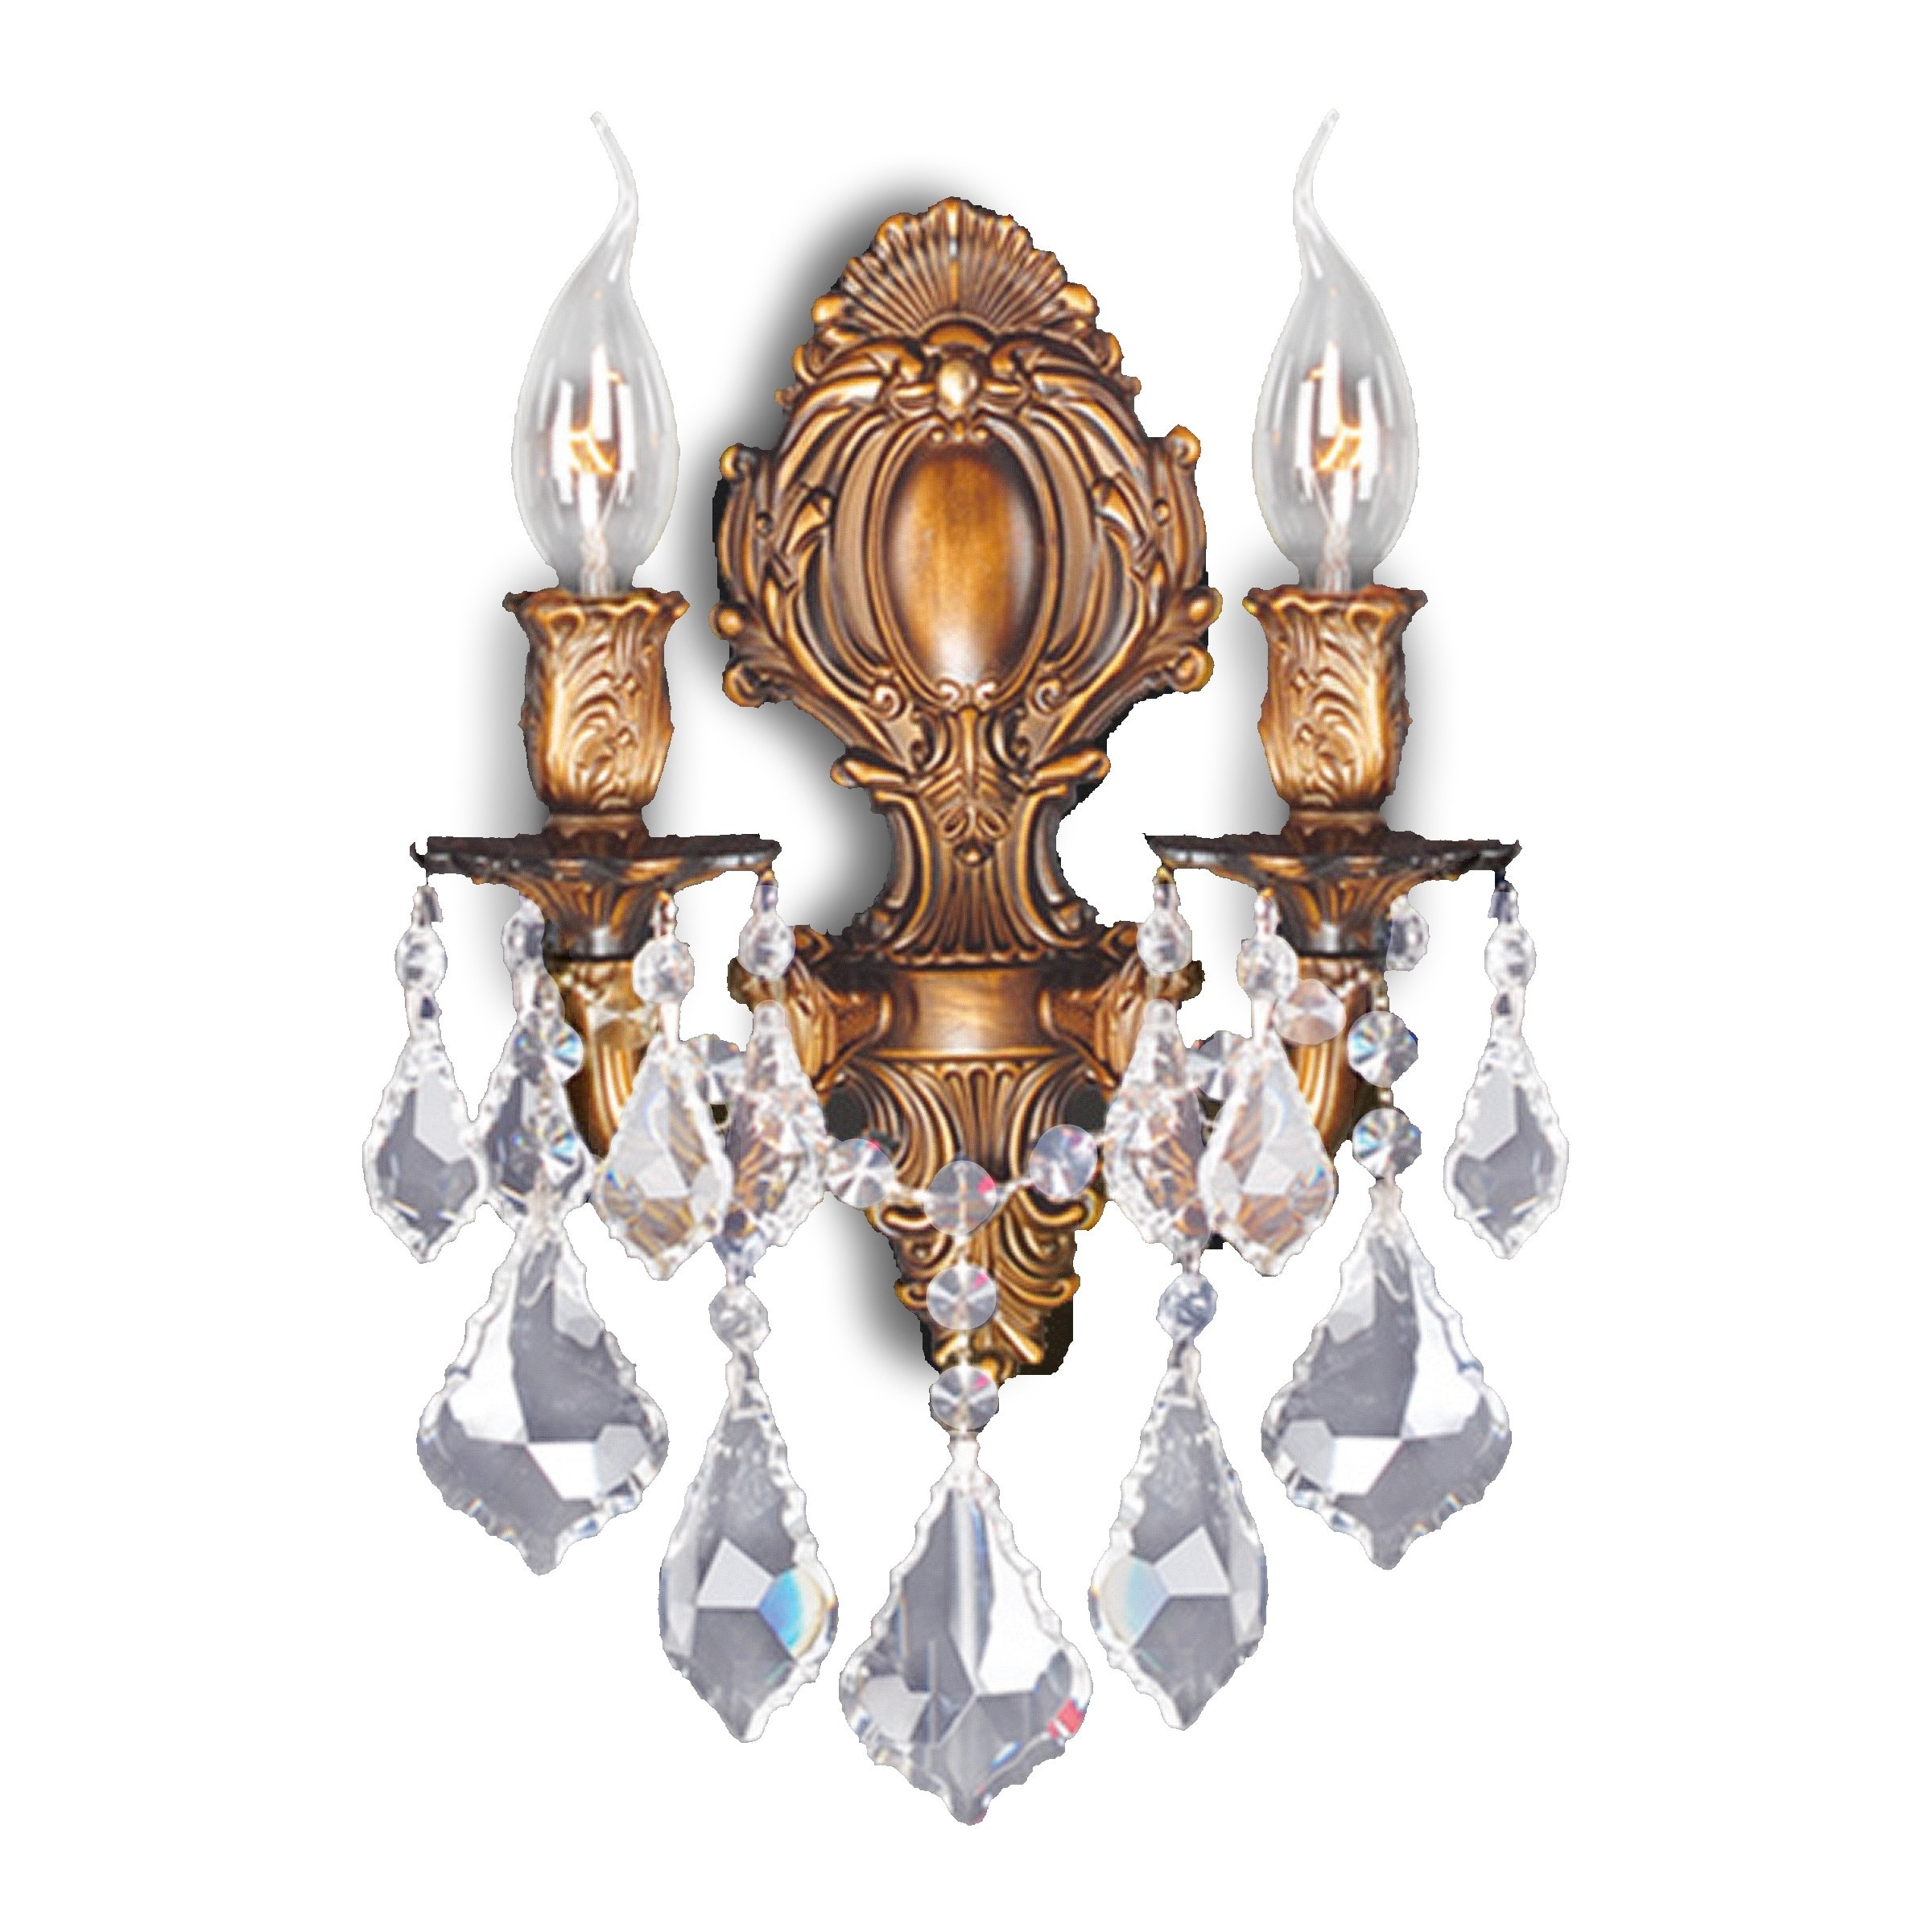 French Royal 2 Light Arm Gold Finish Crystal Candle Wall Sconce On Free Shipping Today 10533258